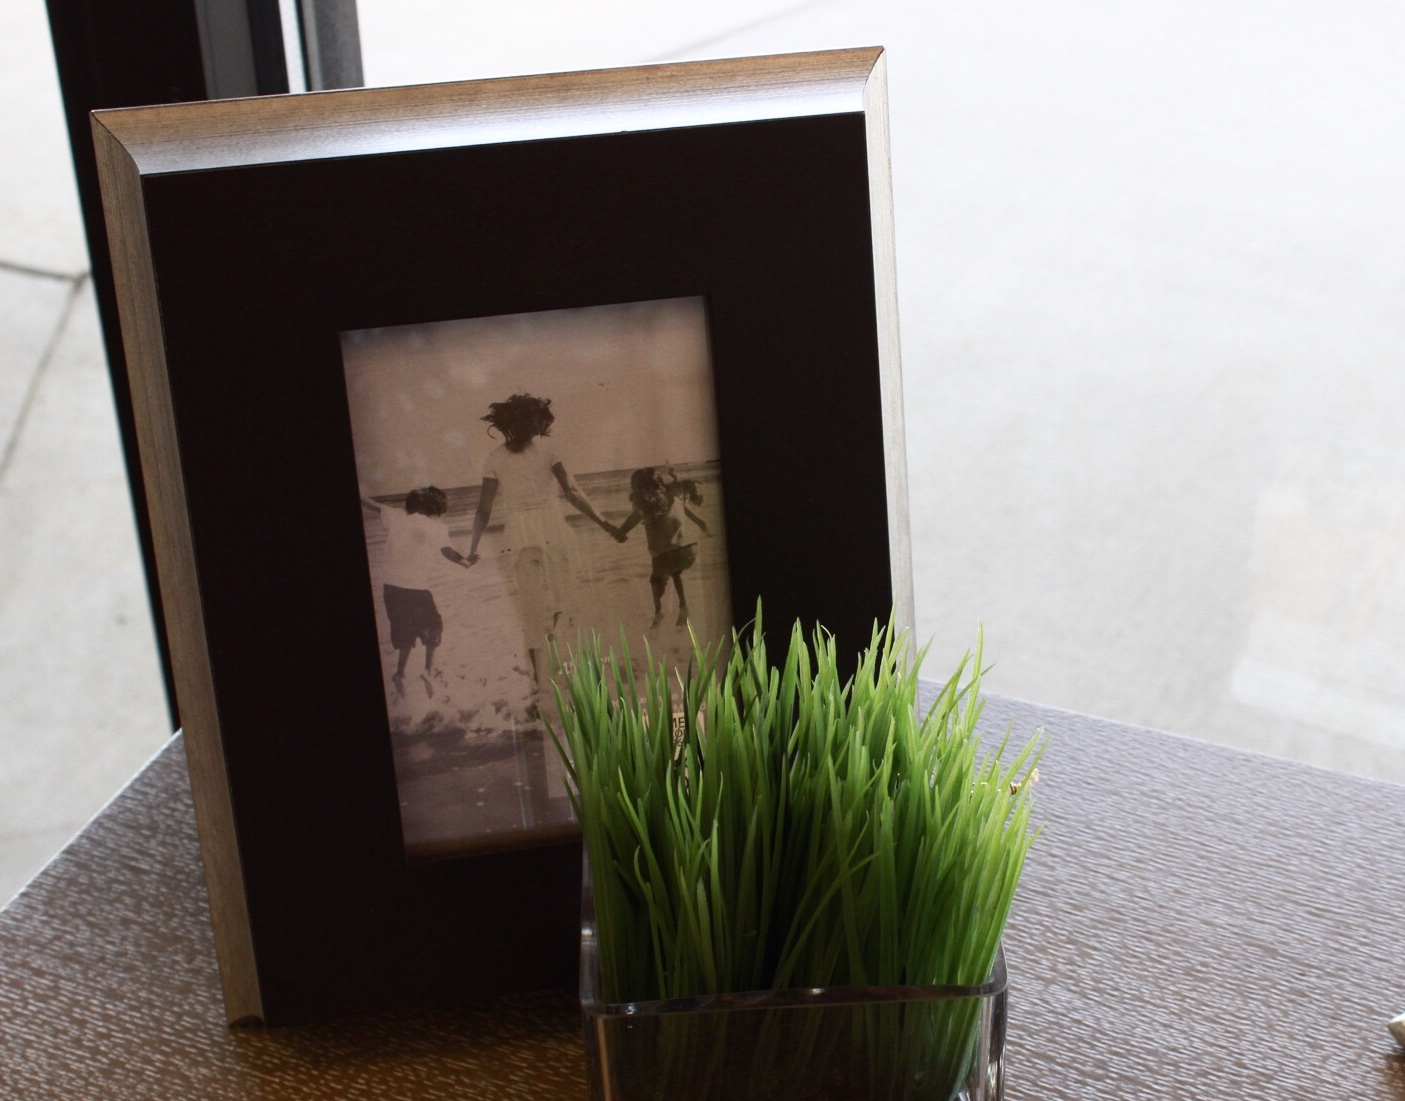 You'll want to make sure you have plenty of picture frames to keep your family and friends in sight.